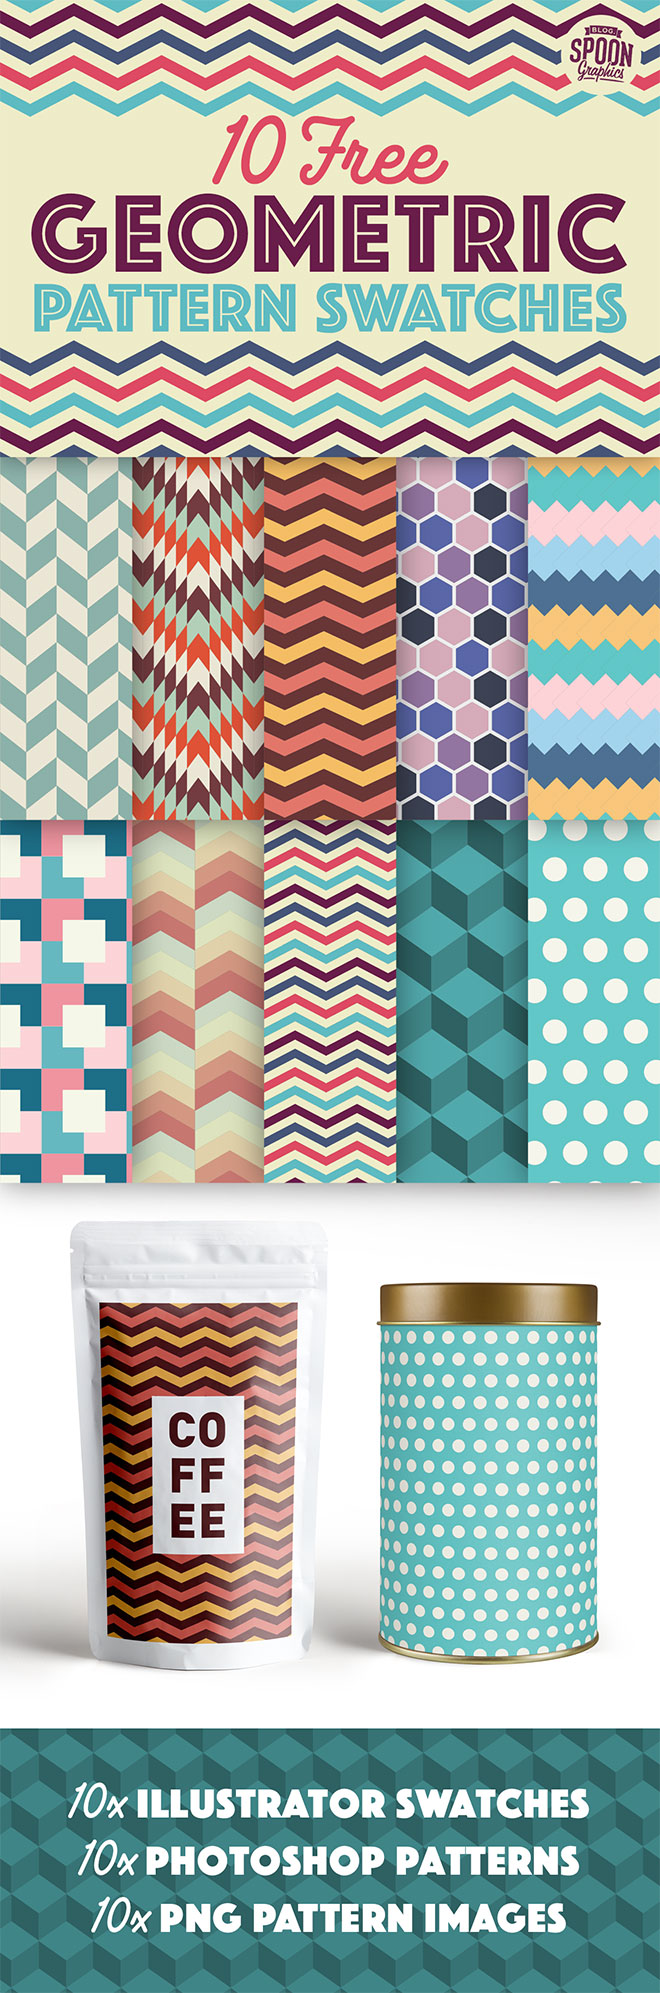 10 Free Geometric Patterns